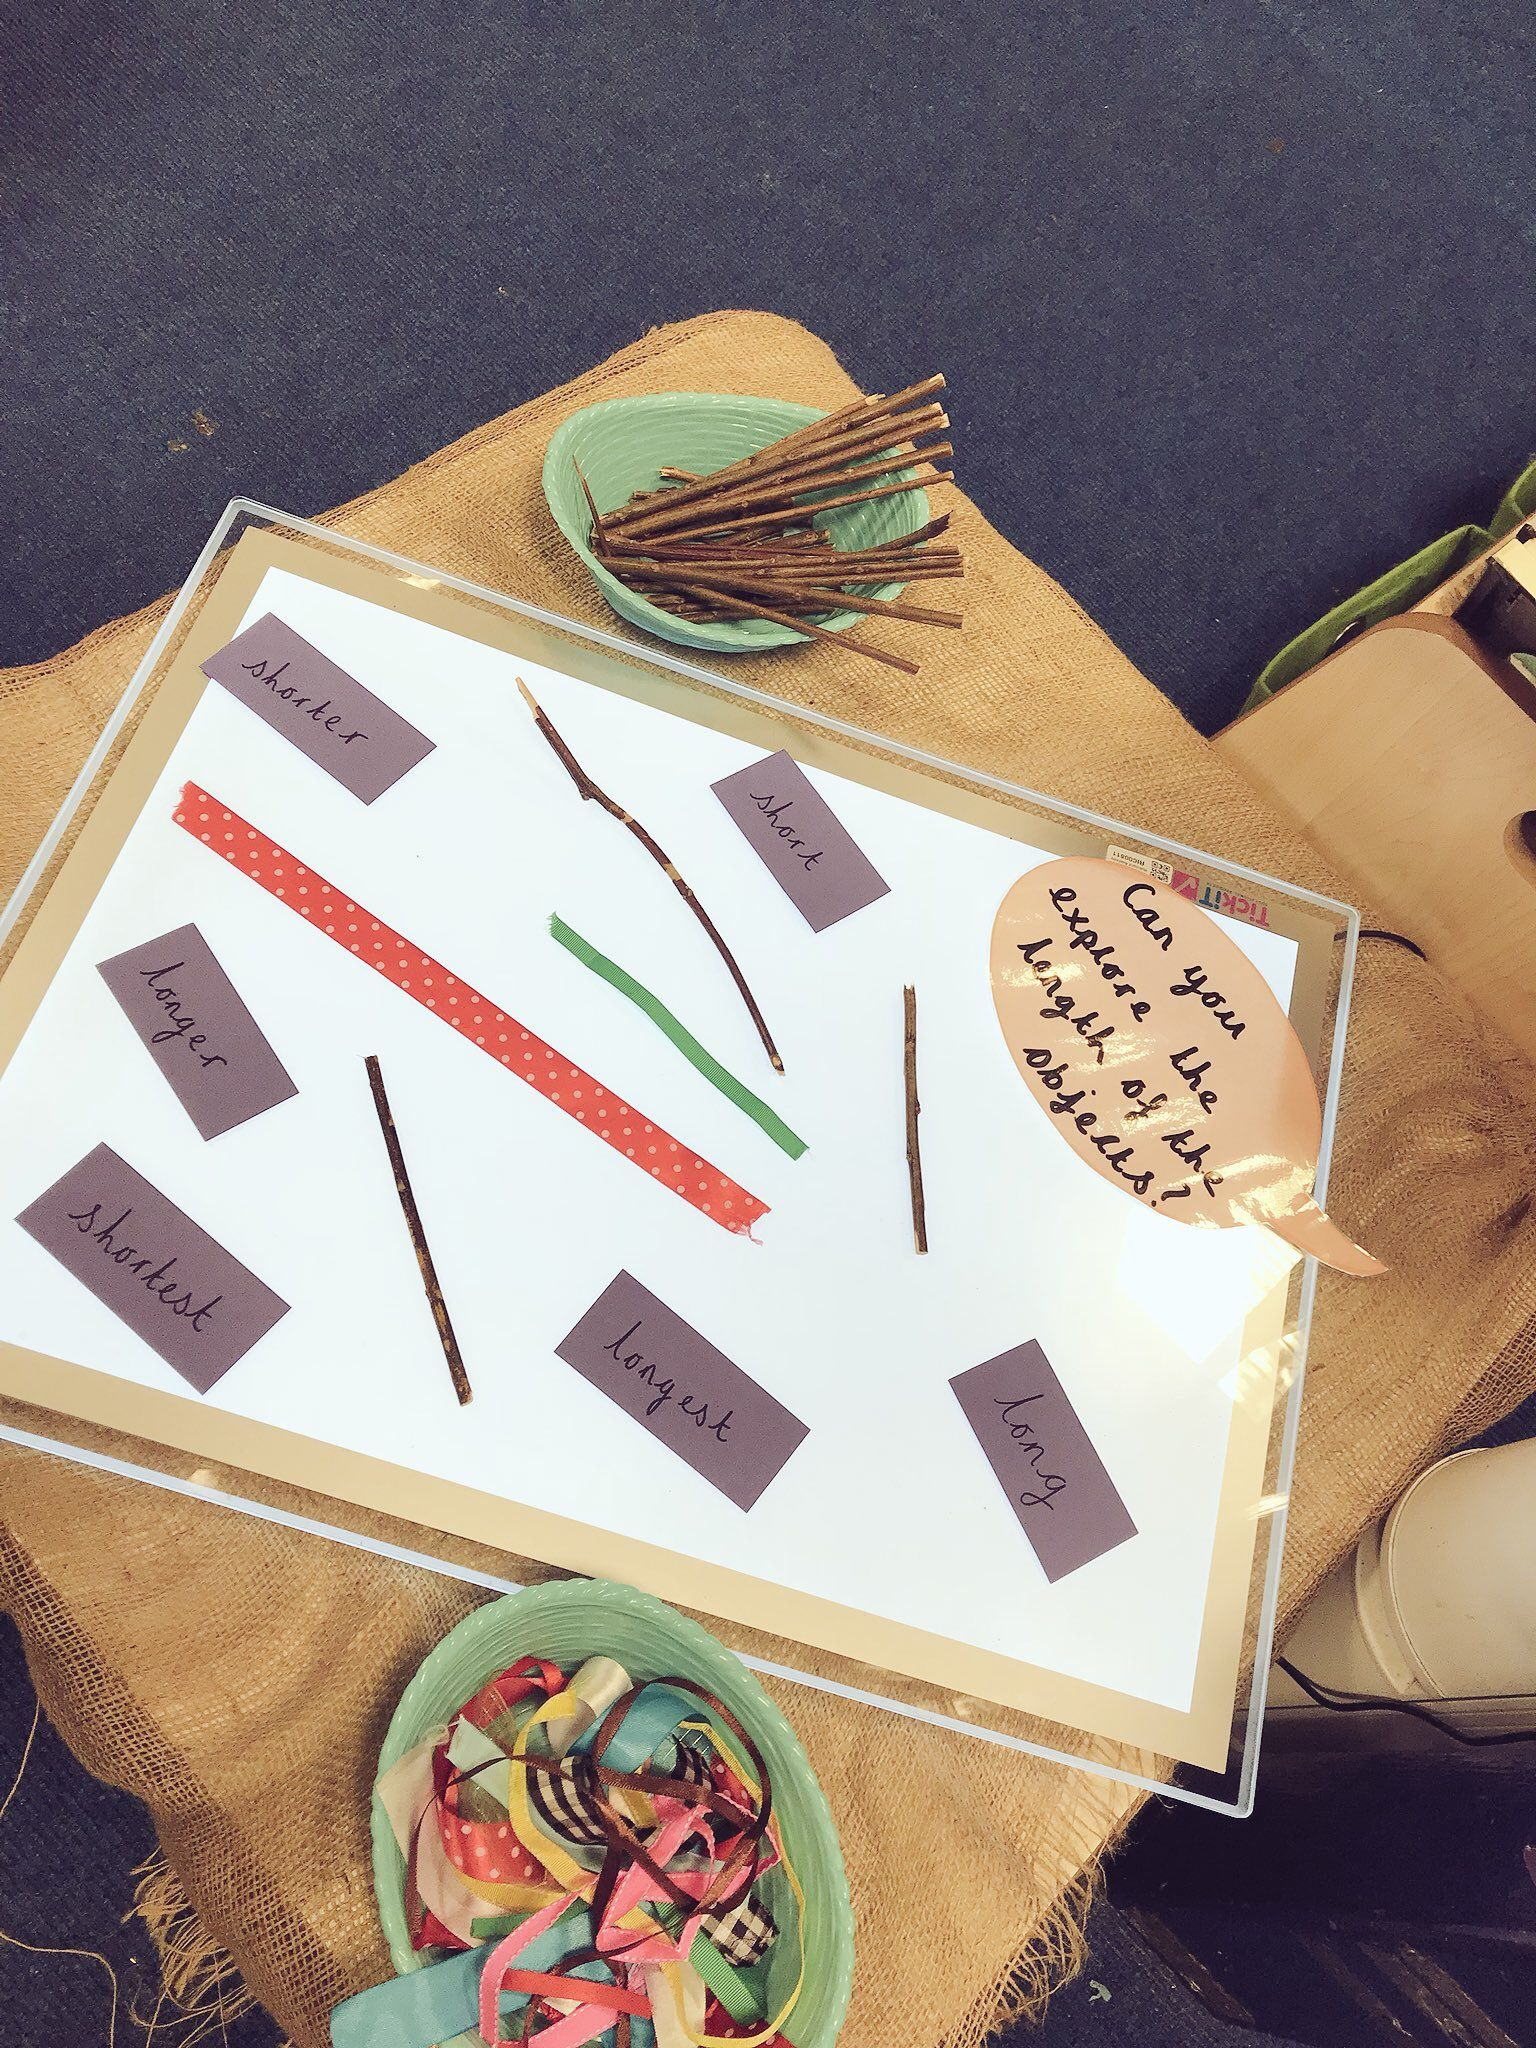 Can You Explore The Length Of The Objects Eyfs